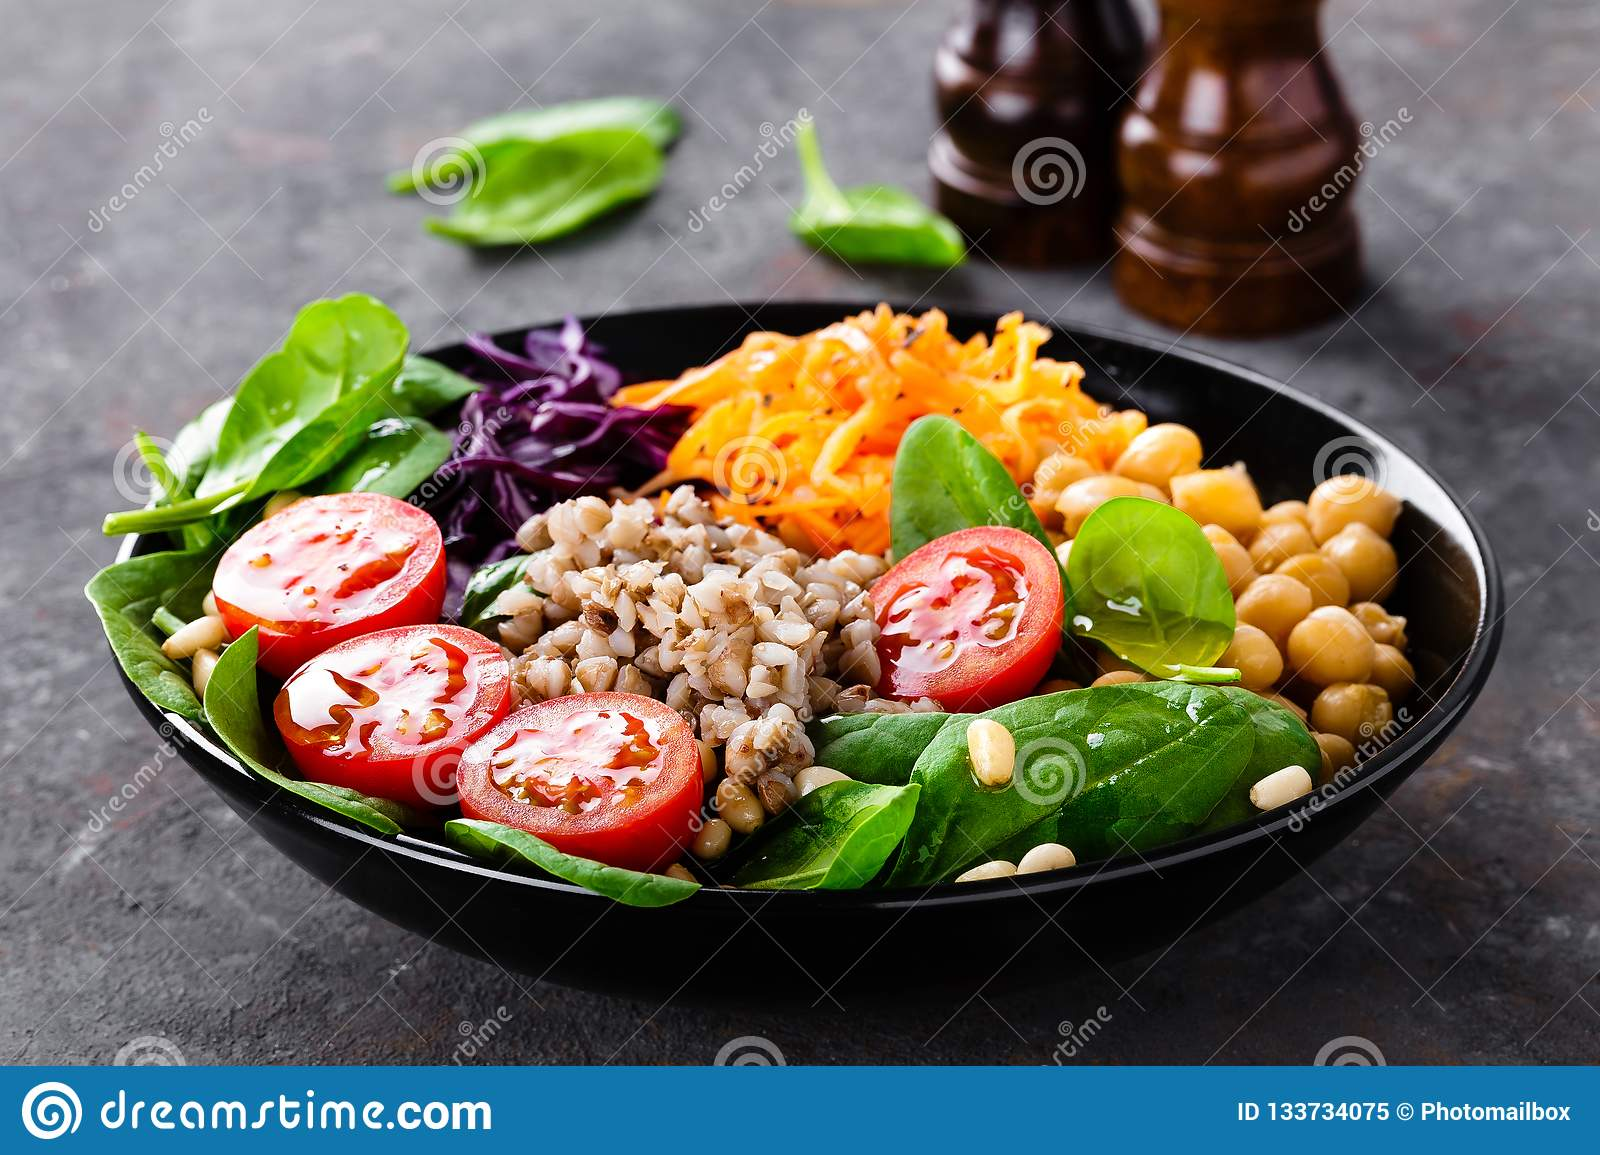 Healthy vegetarian dish with buckwheat and vegetable salad of chickpea, kale, carrot, fresh tomatoes, spinach leaves and pine nuts